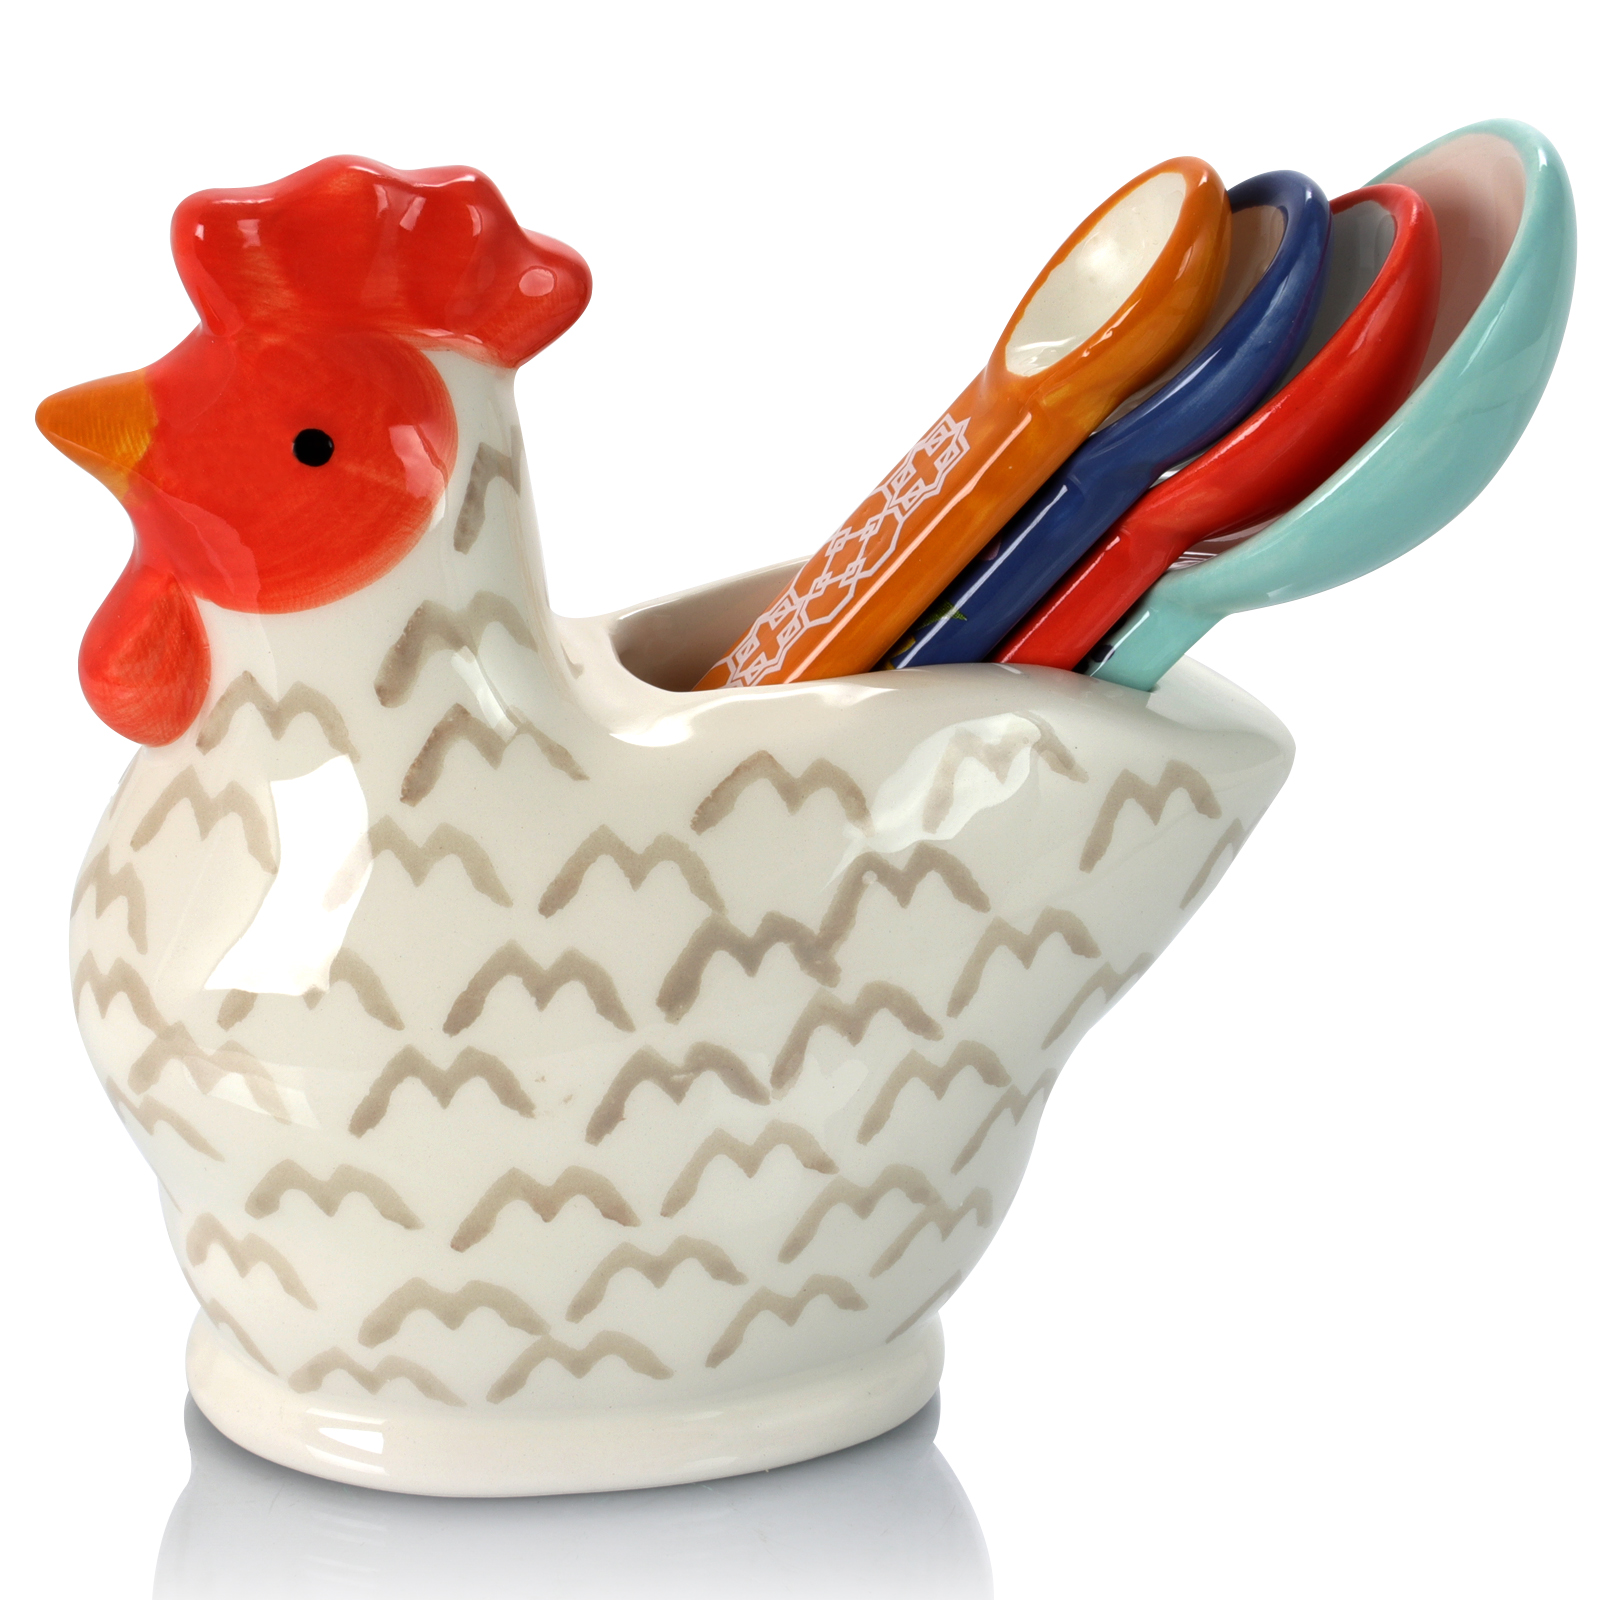 Image of Urban Market Life On The Farm 4 Piece Durastone Figural Rooster Measuring Spoon Set, Pink